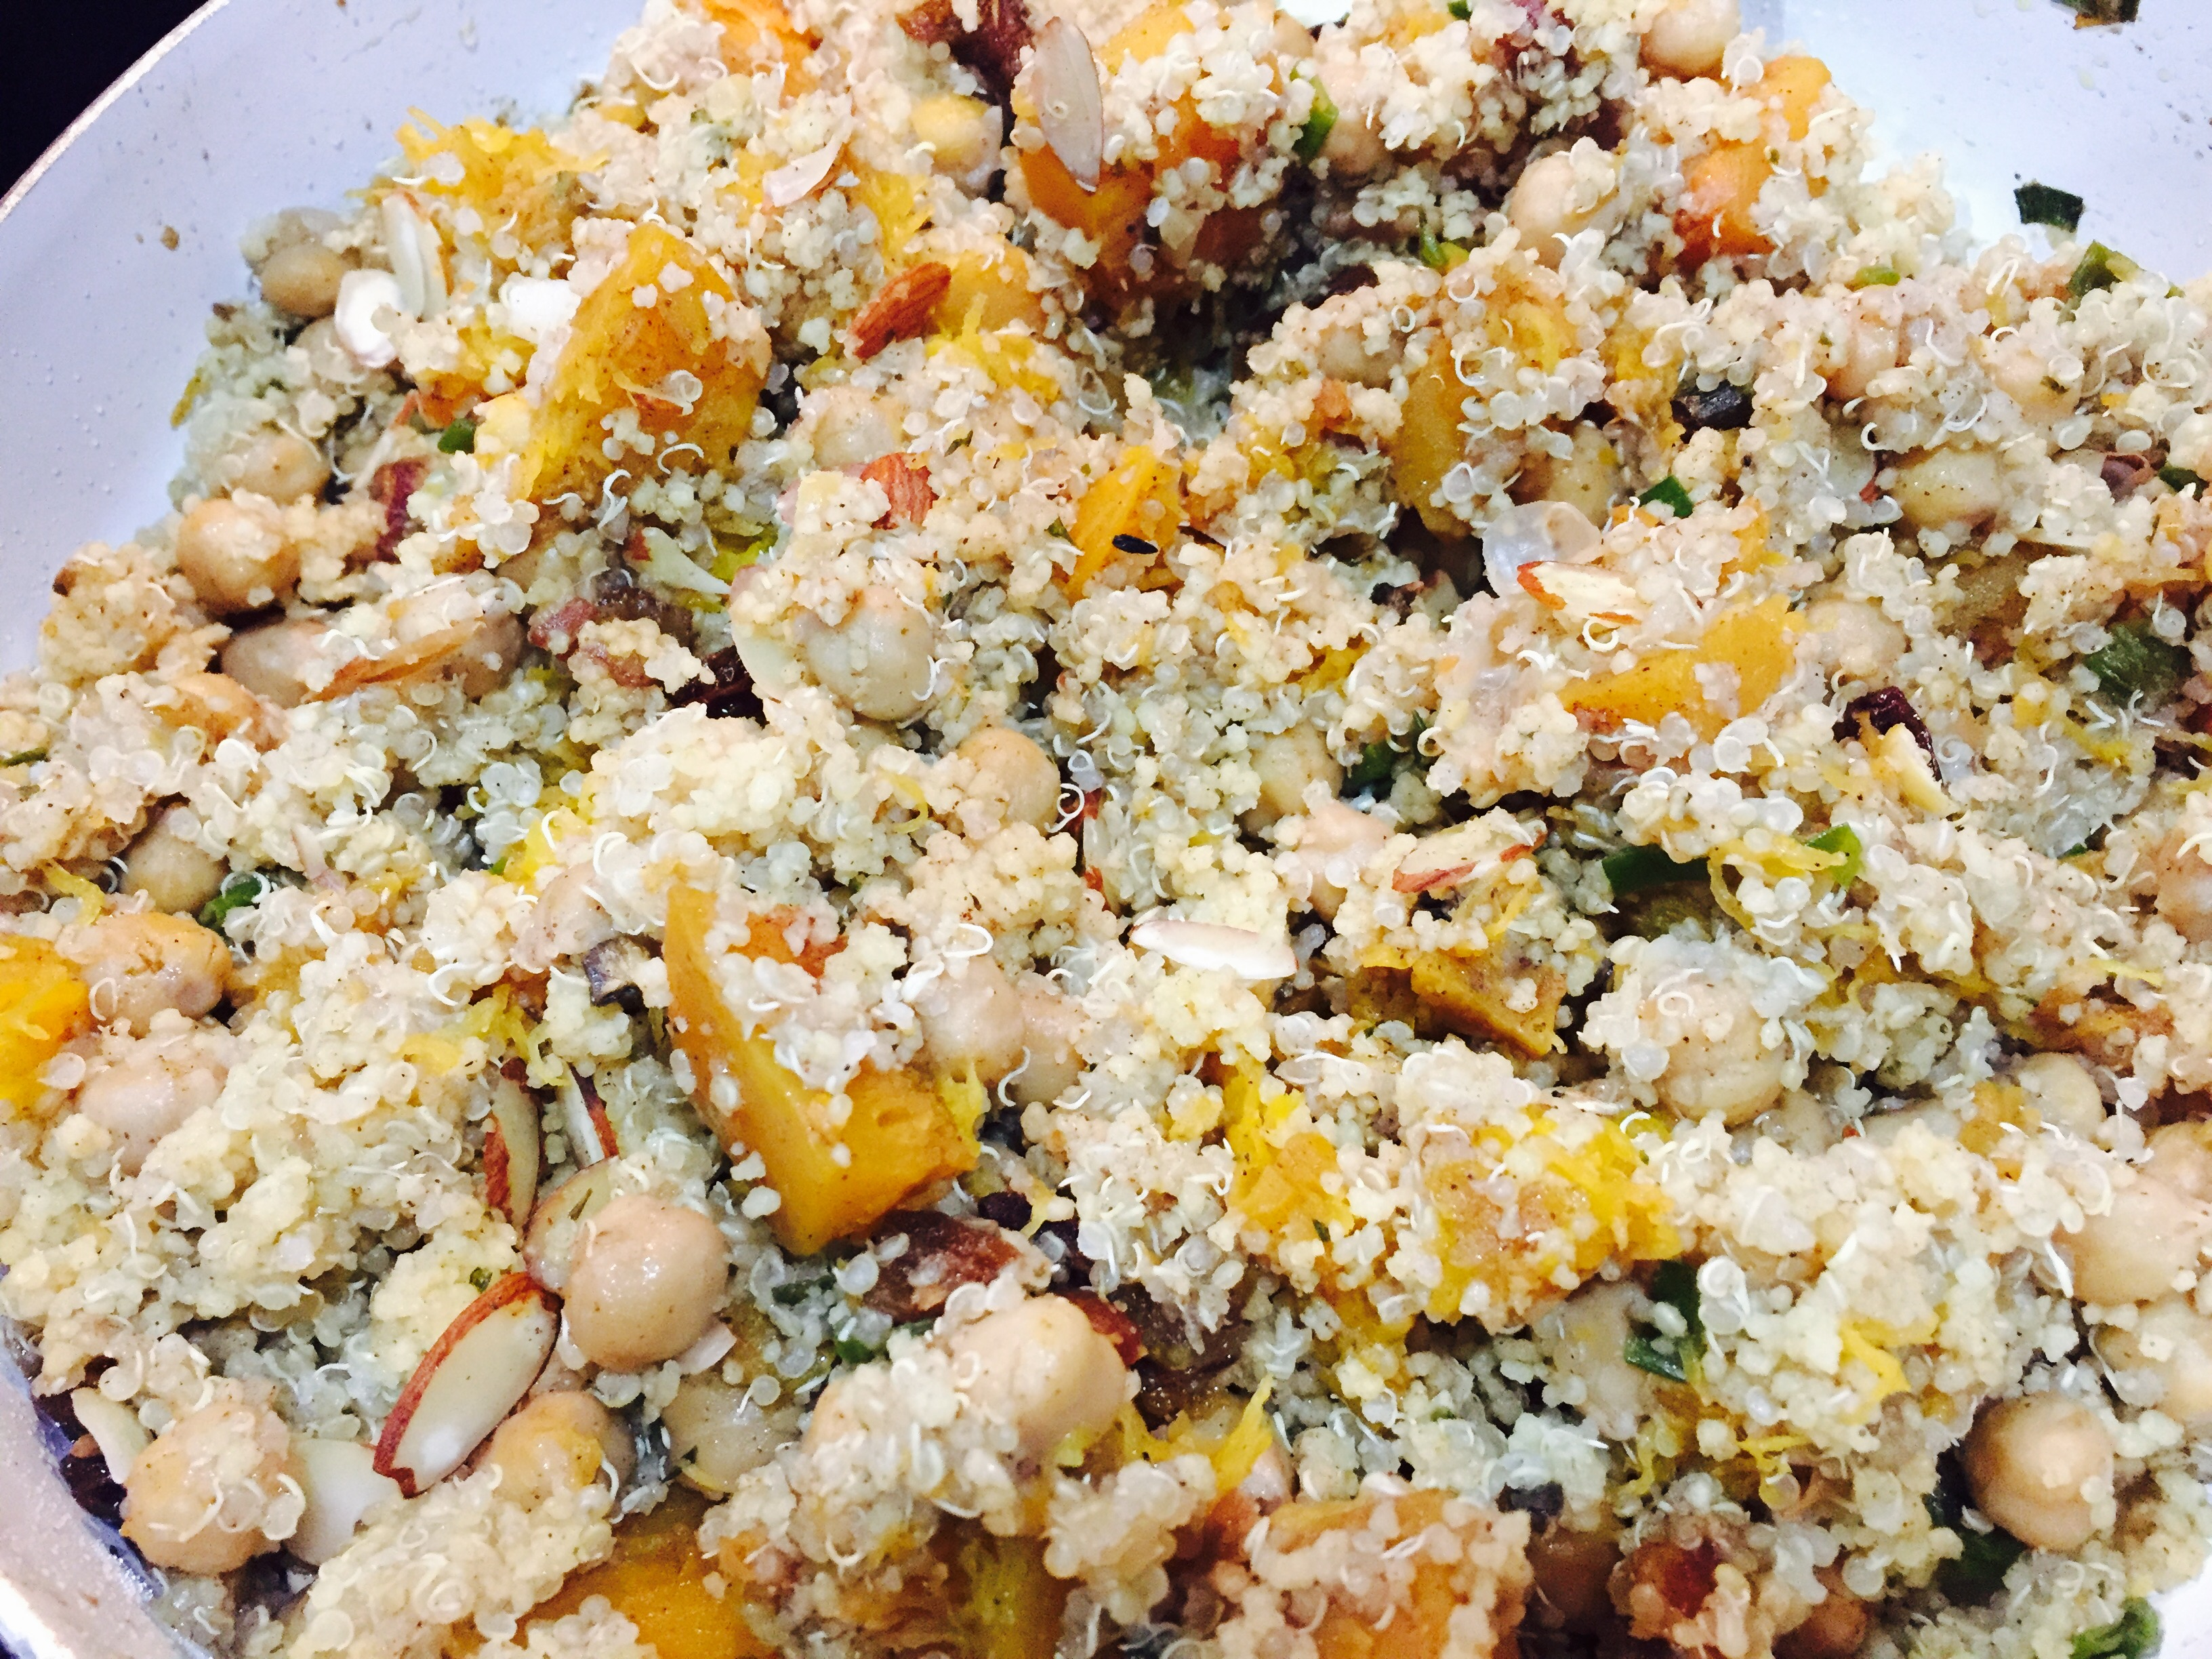 Sweet and Nutty Moroccan Couscous Yulia Manaeva